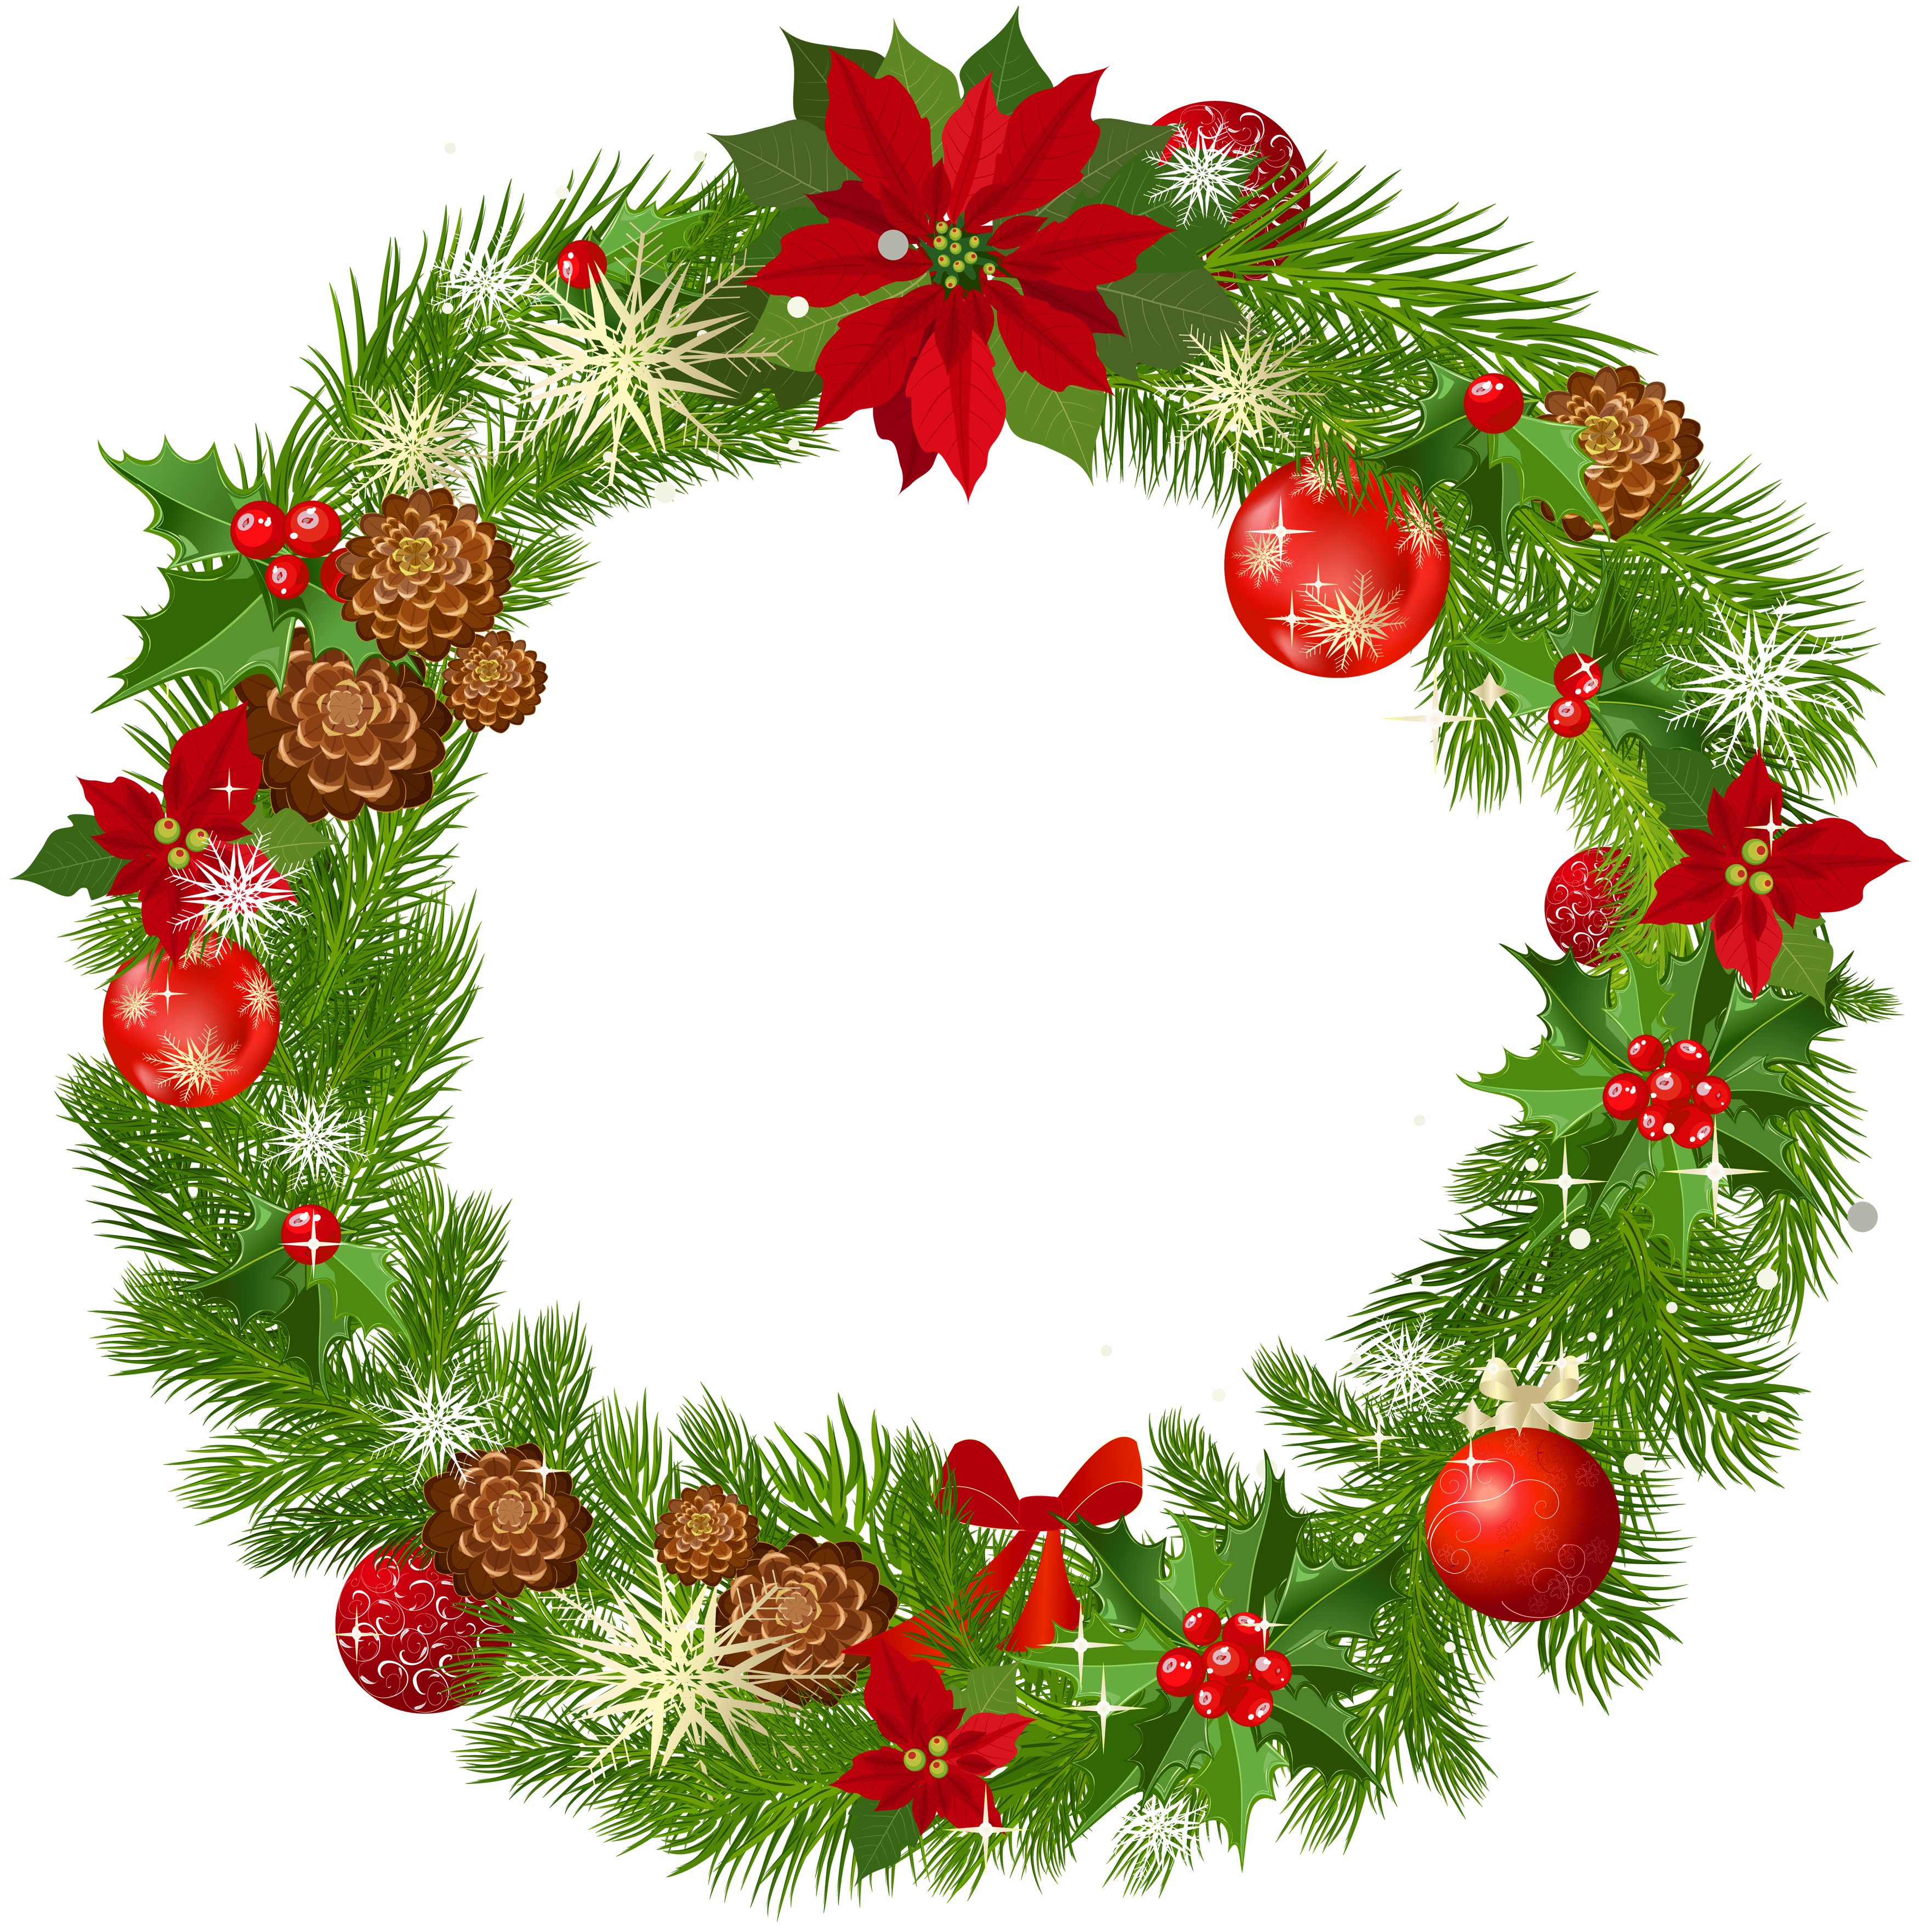 Fancy Christmas Wreath Illustration Clipart Icon